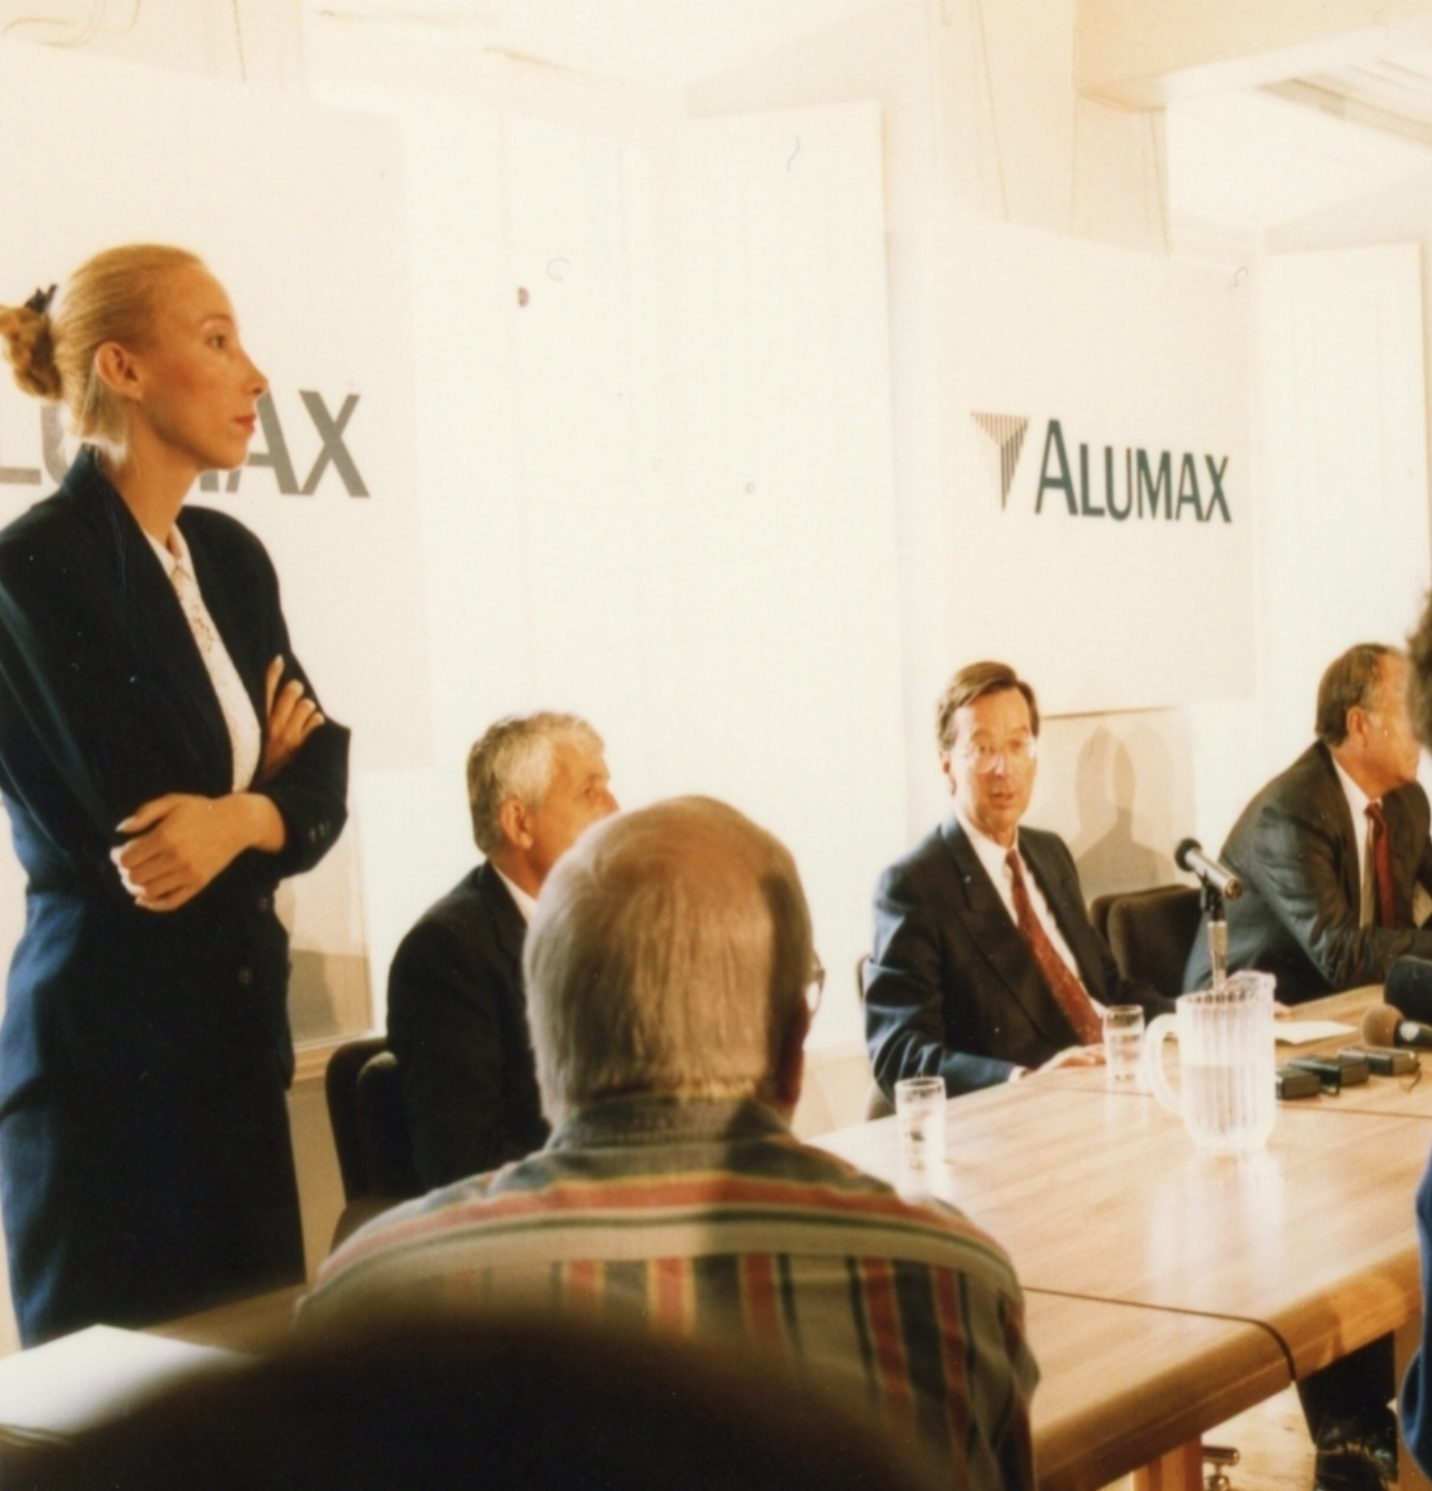 With the CEO of Alumax and the former Premier of Quebec, Canada announcing a 1 billion$ investment to build a new plant.